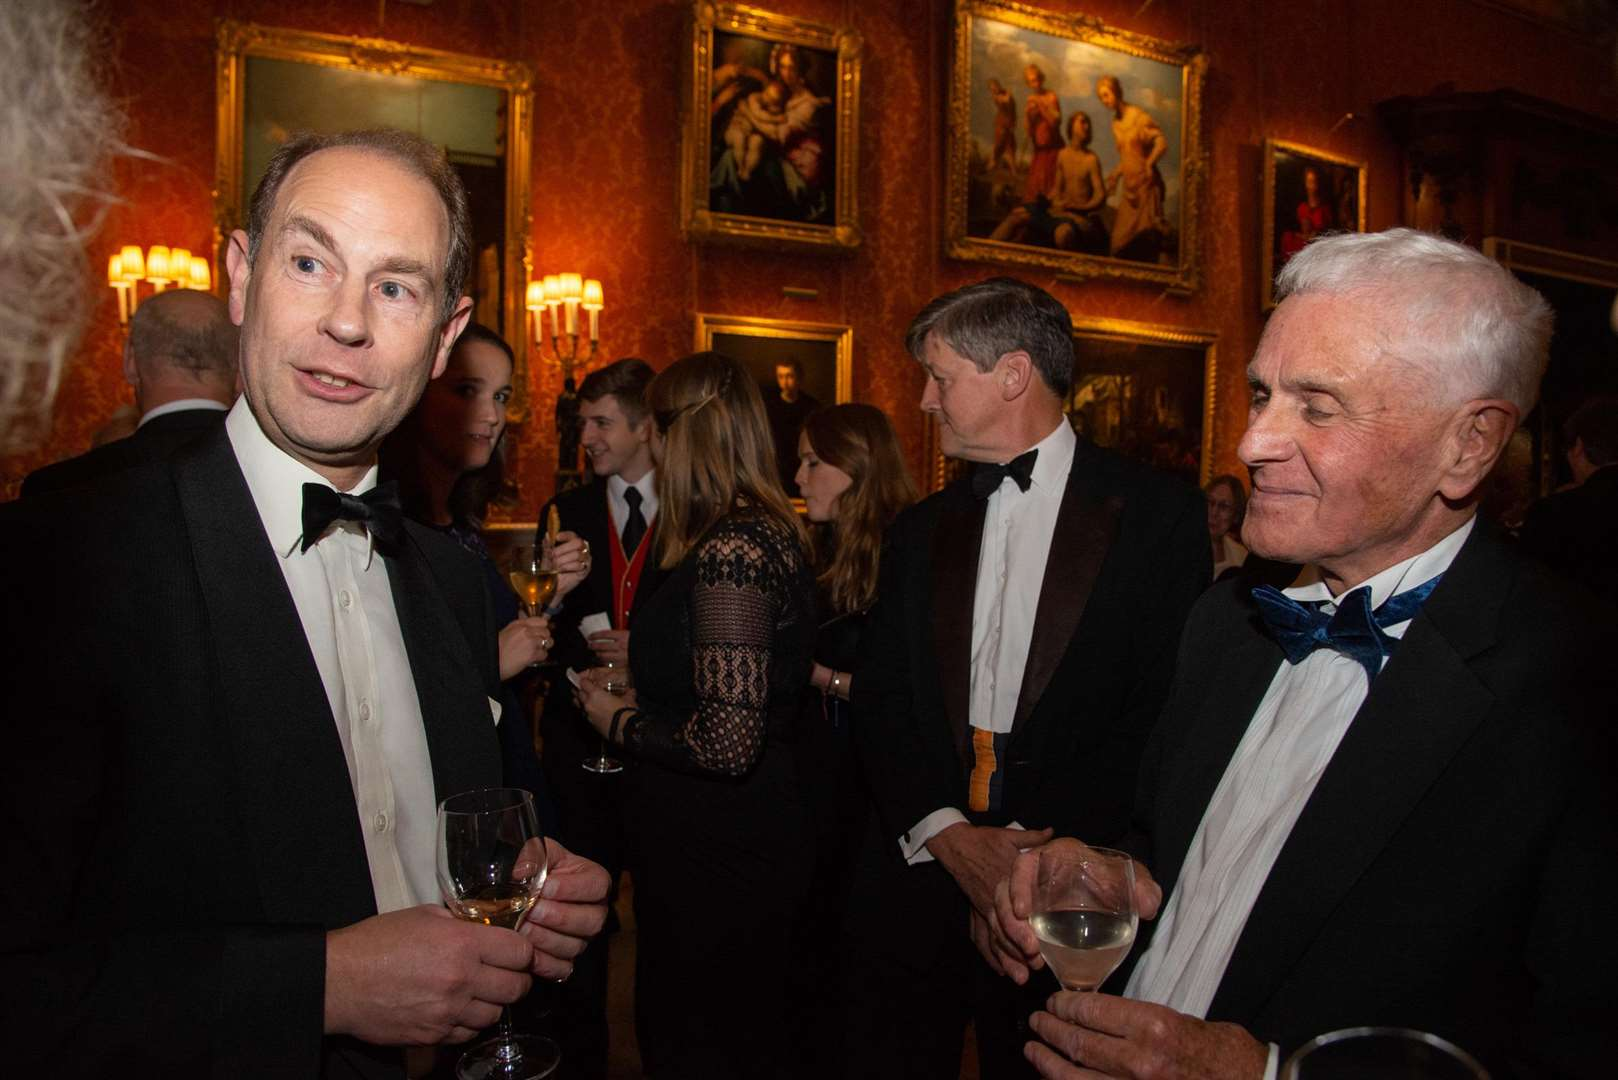 Michael Gibbison chatting to Prince Edward. (6495003)